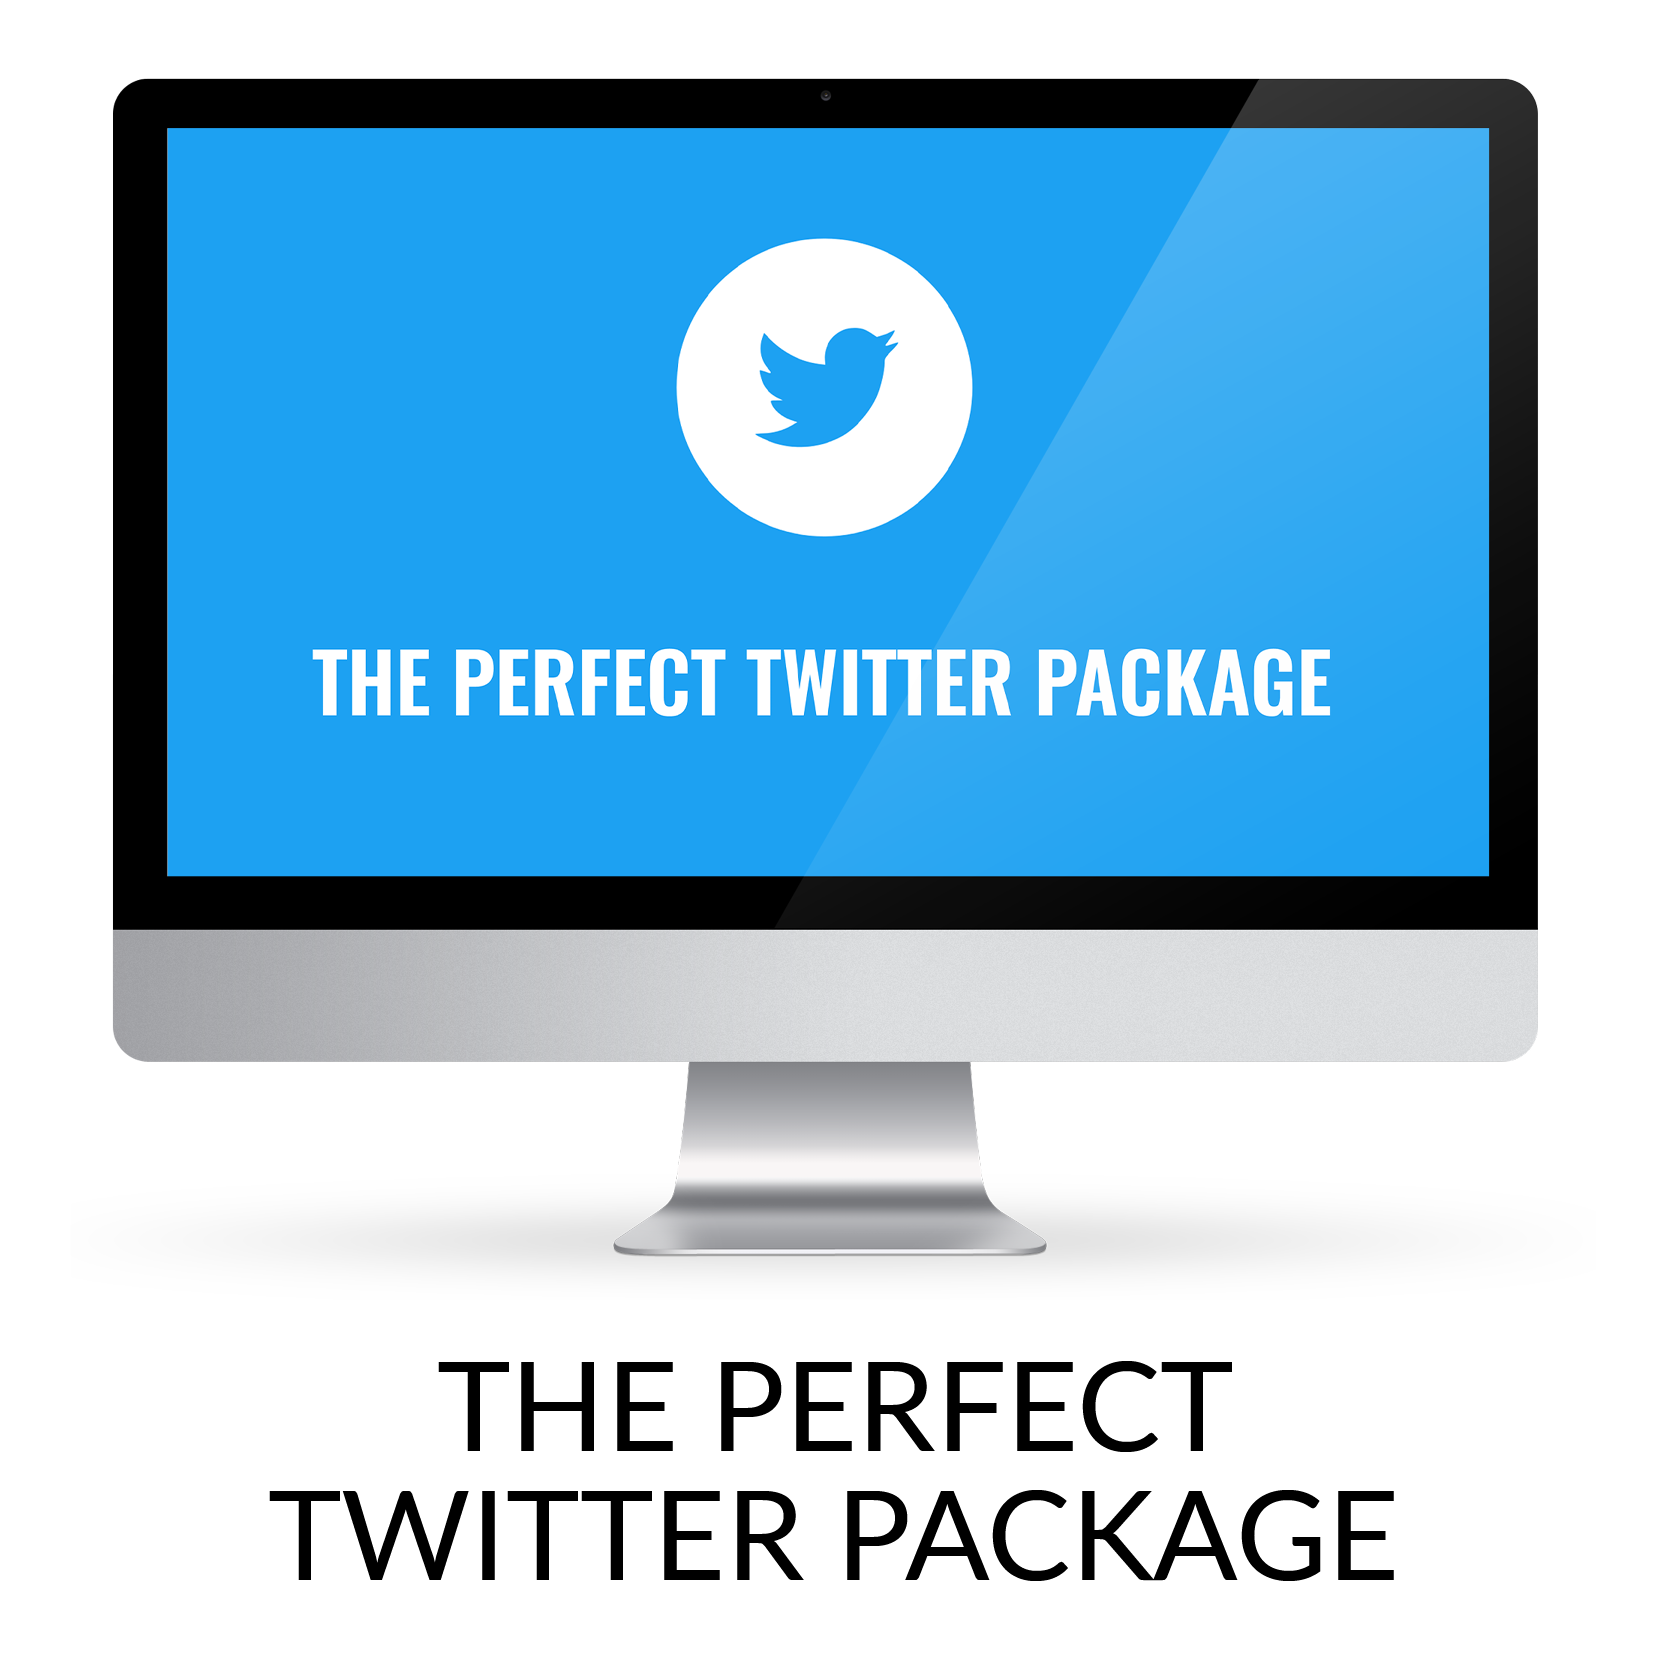 the-perfect-twitter-package